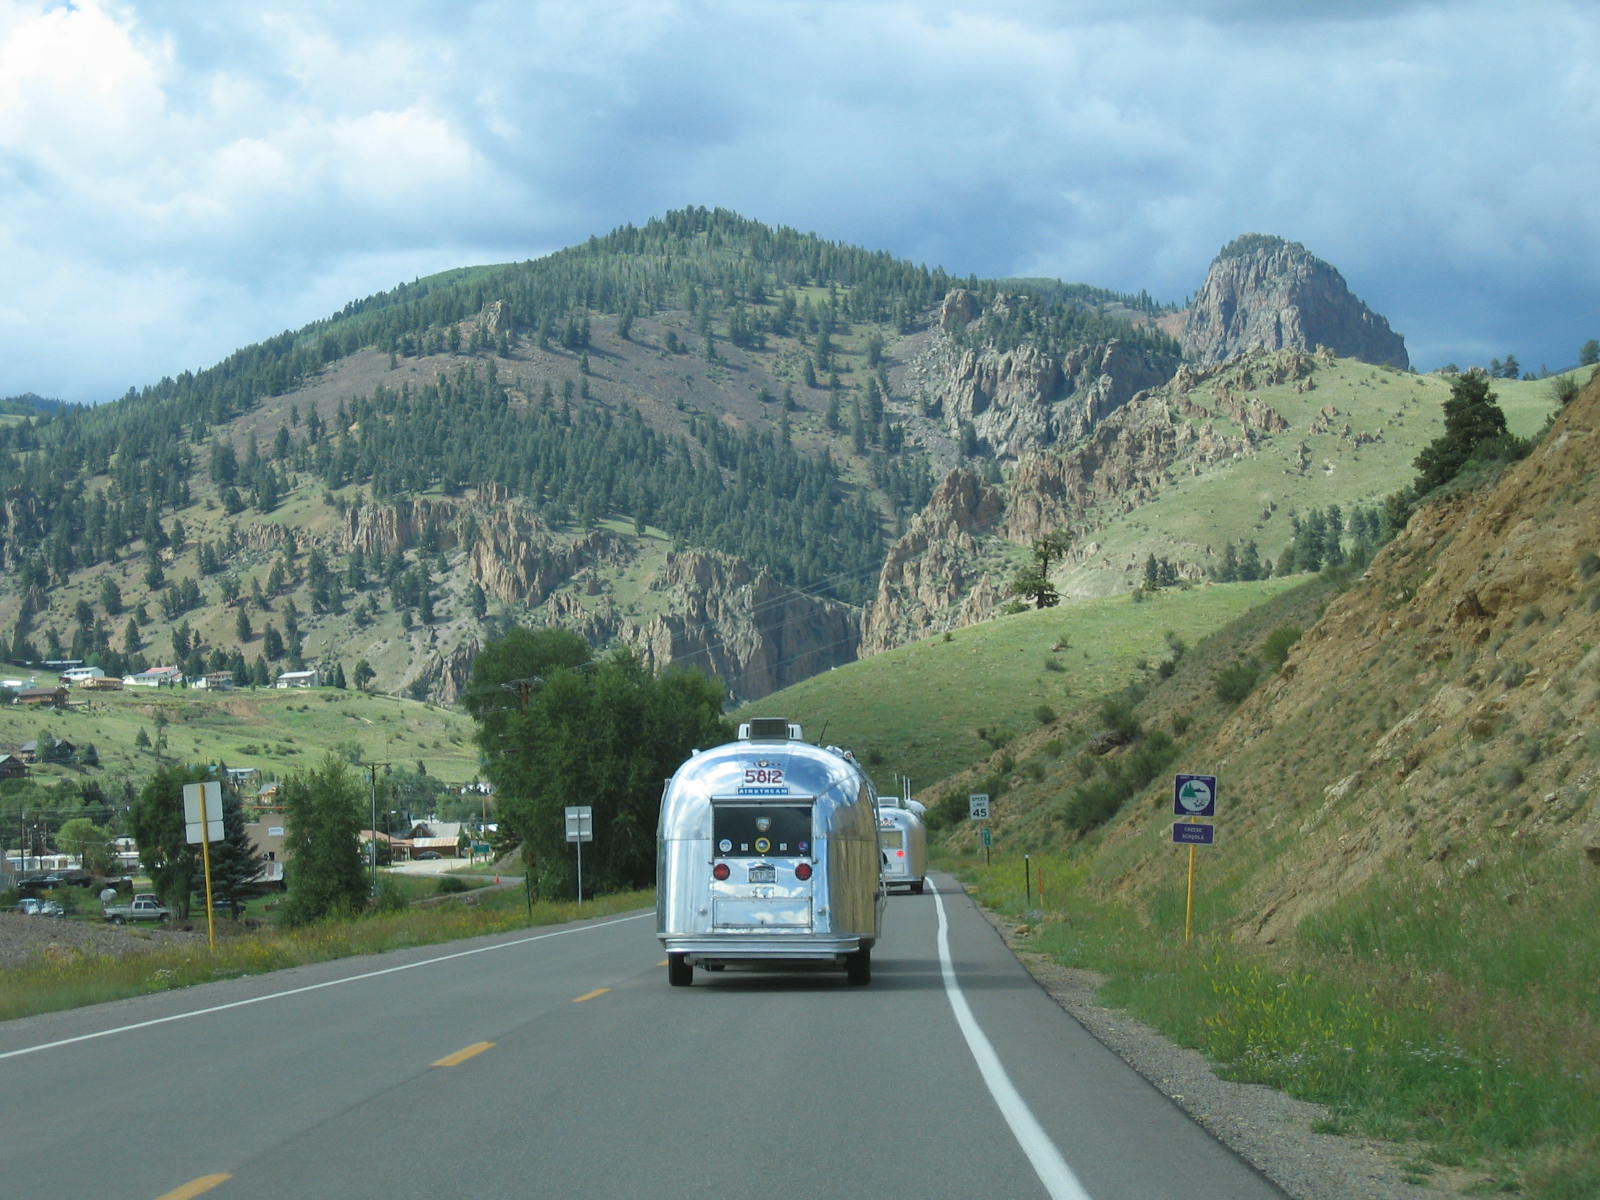 Click image for larger version  Name:Creede2.jpg Views:129 Size:652.8 KB ID:70622